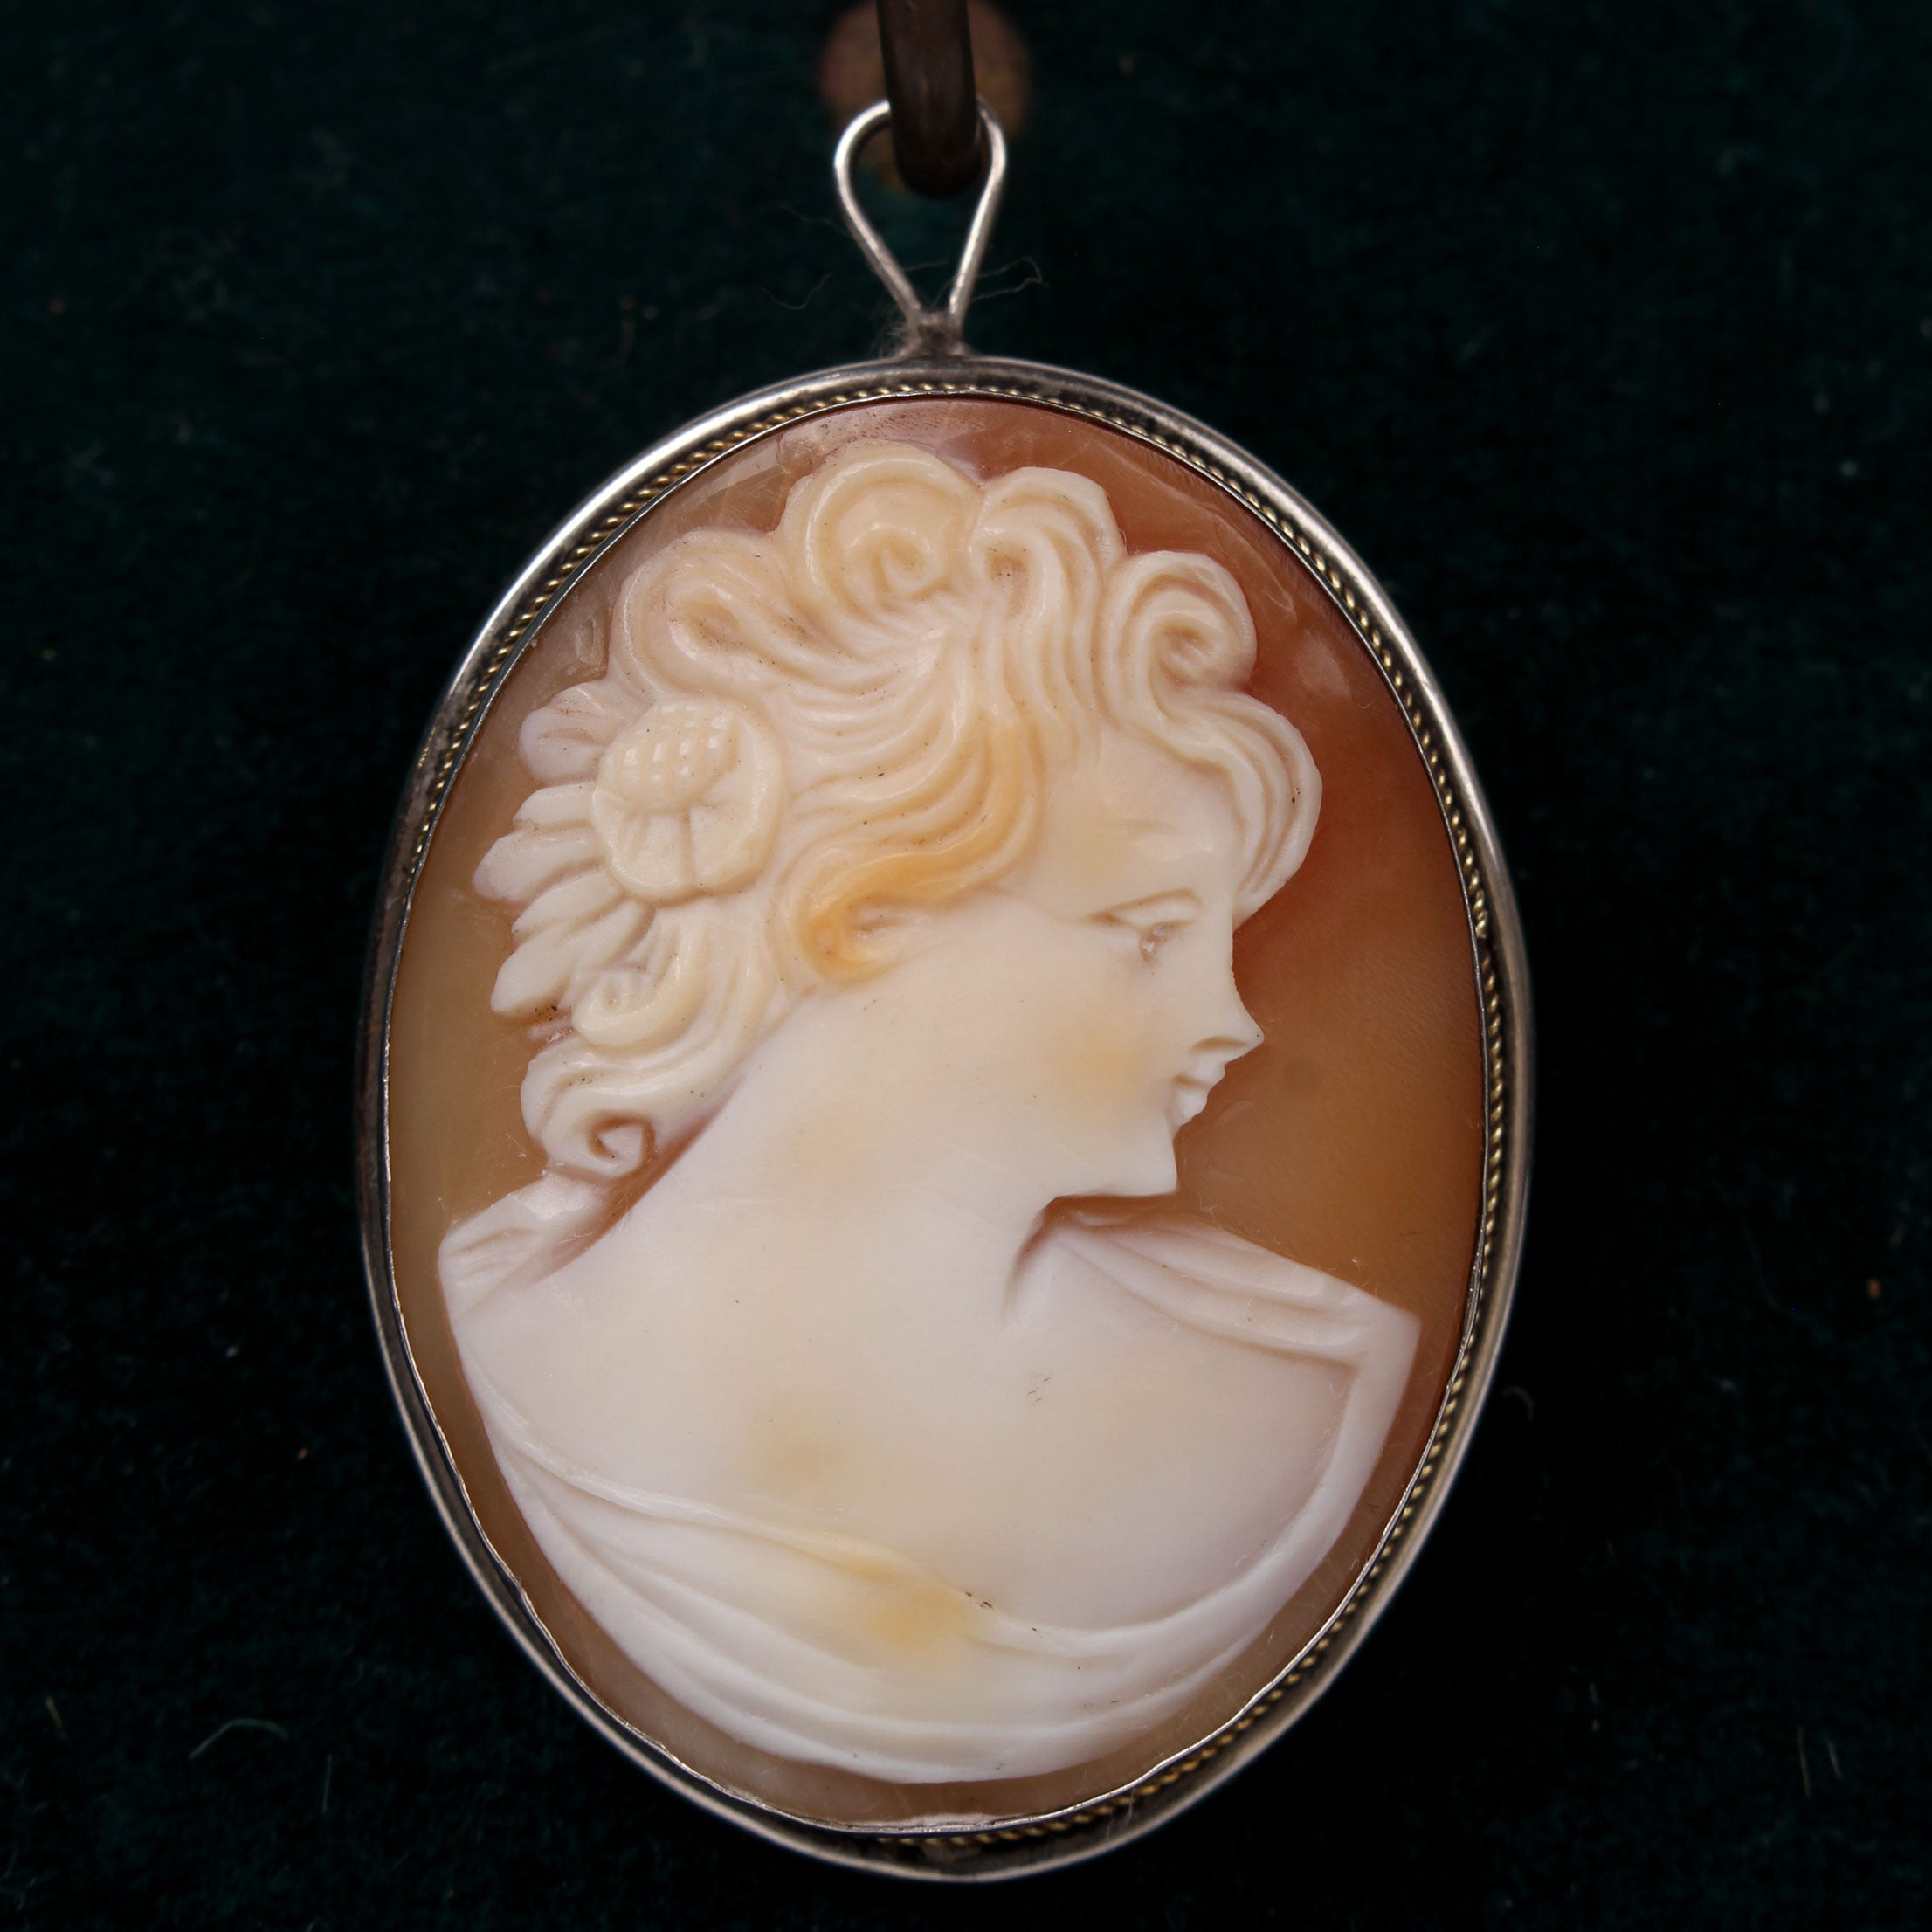 Vintage italian cameo pin pendant in silver bezel fatto a mano vintage italian cameo pin pendant in silver bezel aloadofball Image collections